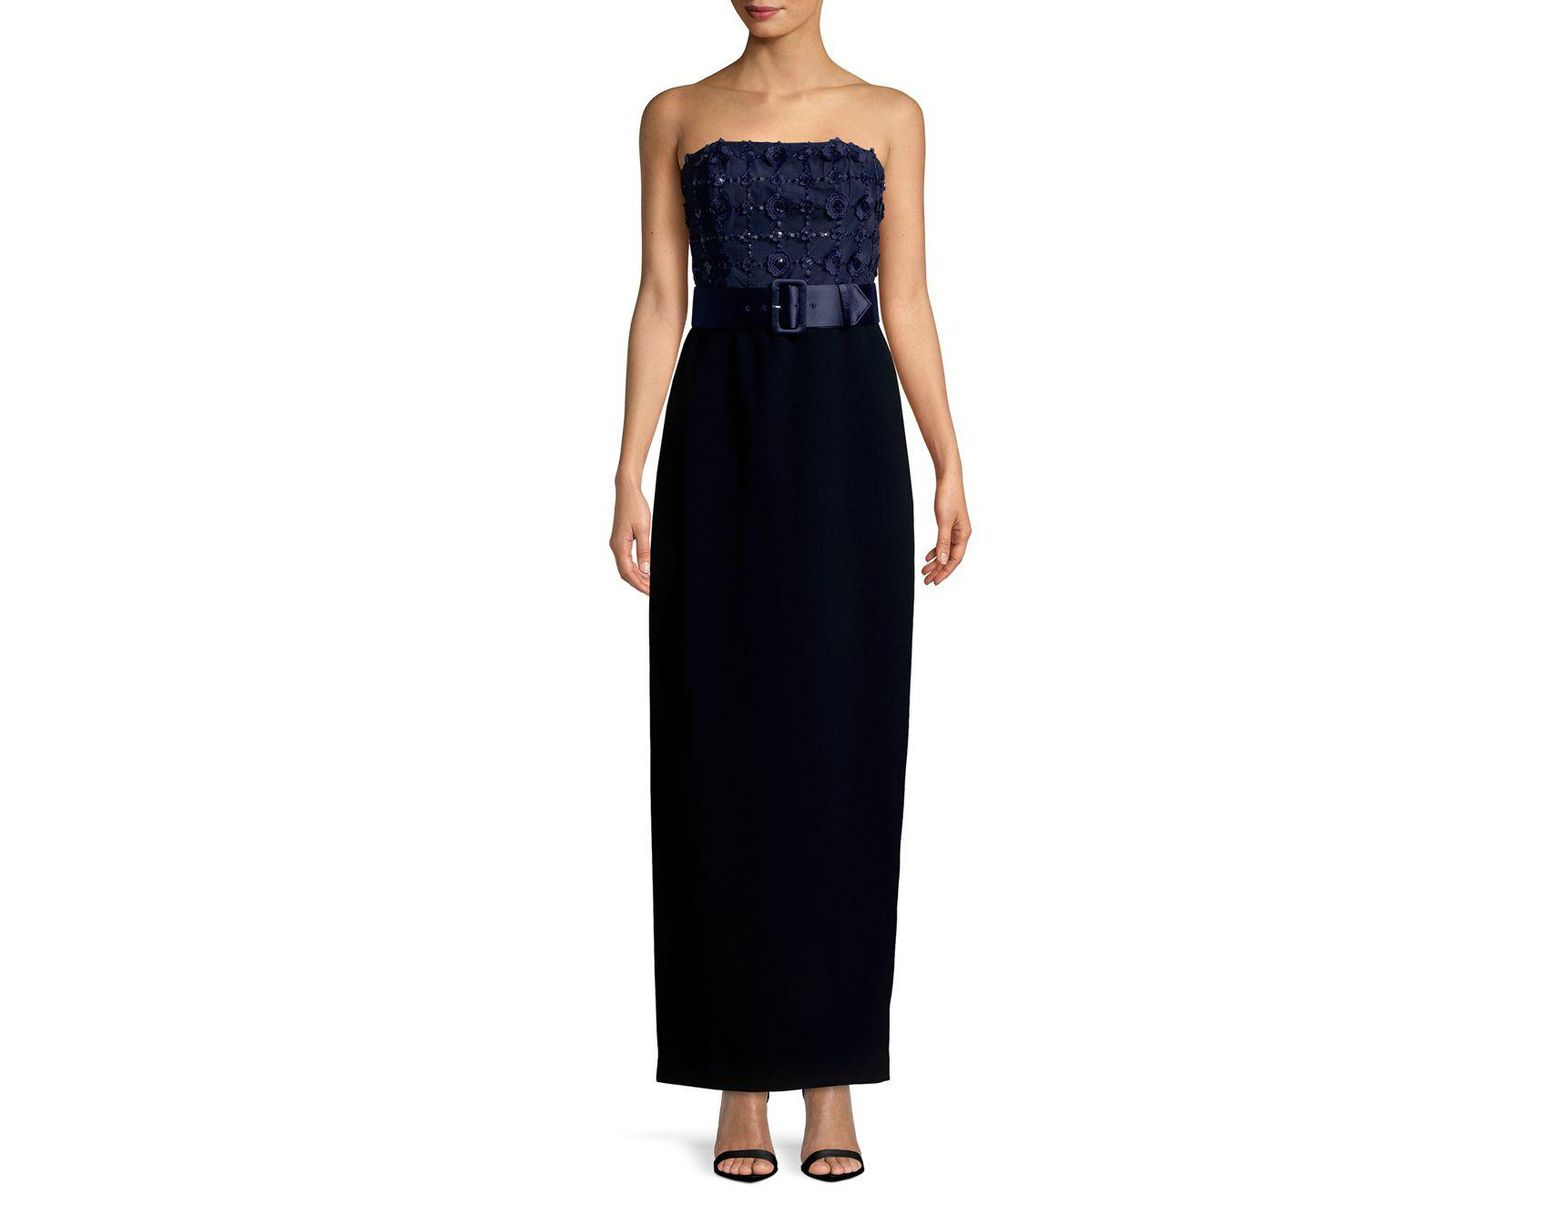 09da6200ab7 Karl Lagerfeld Social Embroidered Evening Gown in Black - Save 55% - Lyst